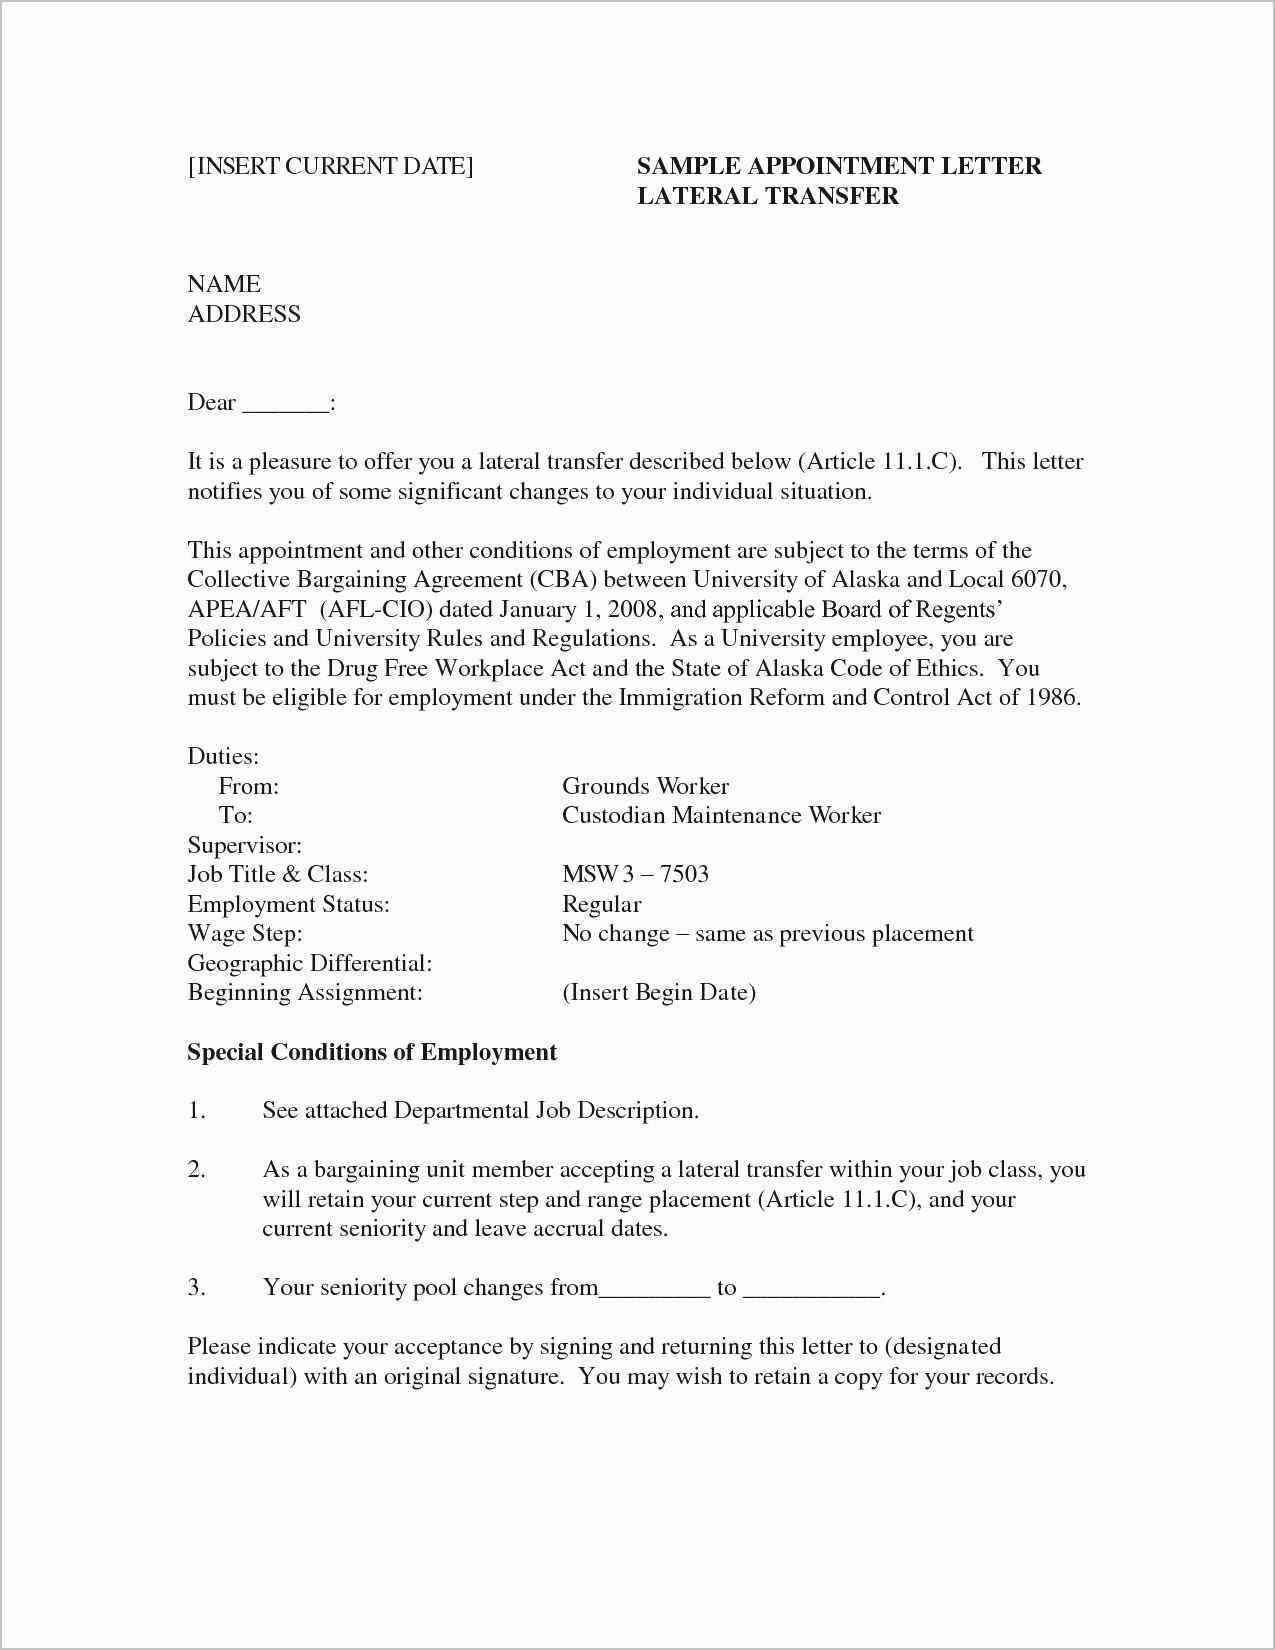 food and beverage resume template example-Food and Beverage Resume Template Beautiful Elementary Teacher Resume Sample Beautiful Resume Music 0d 14-i